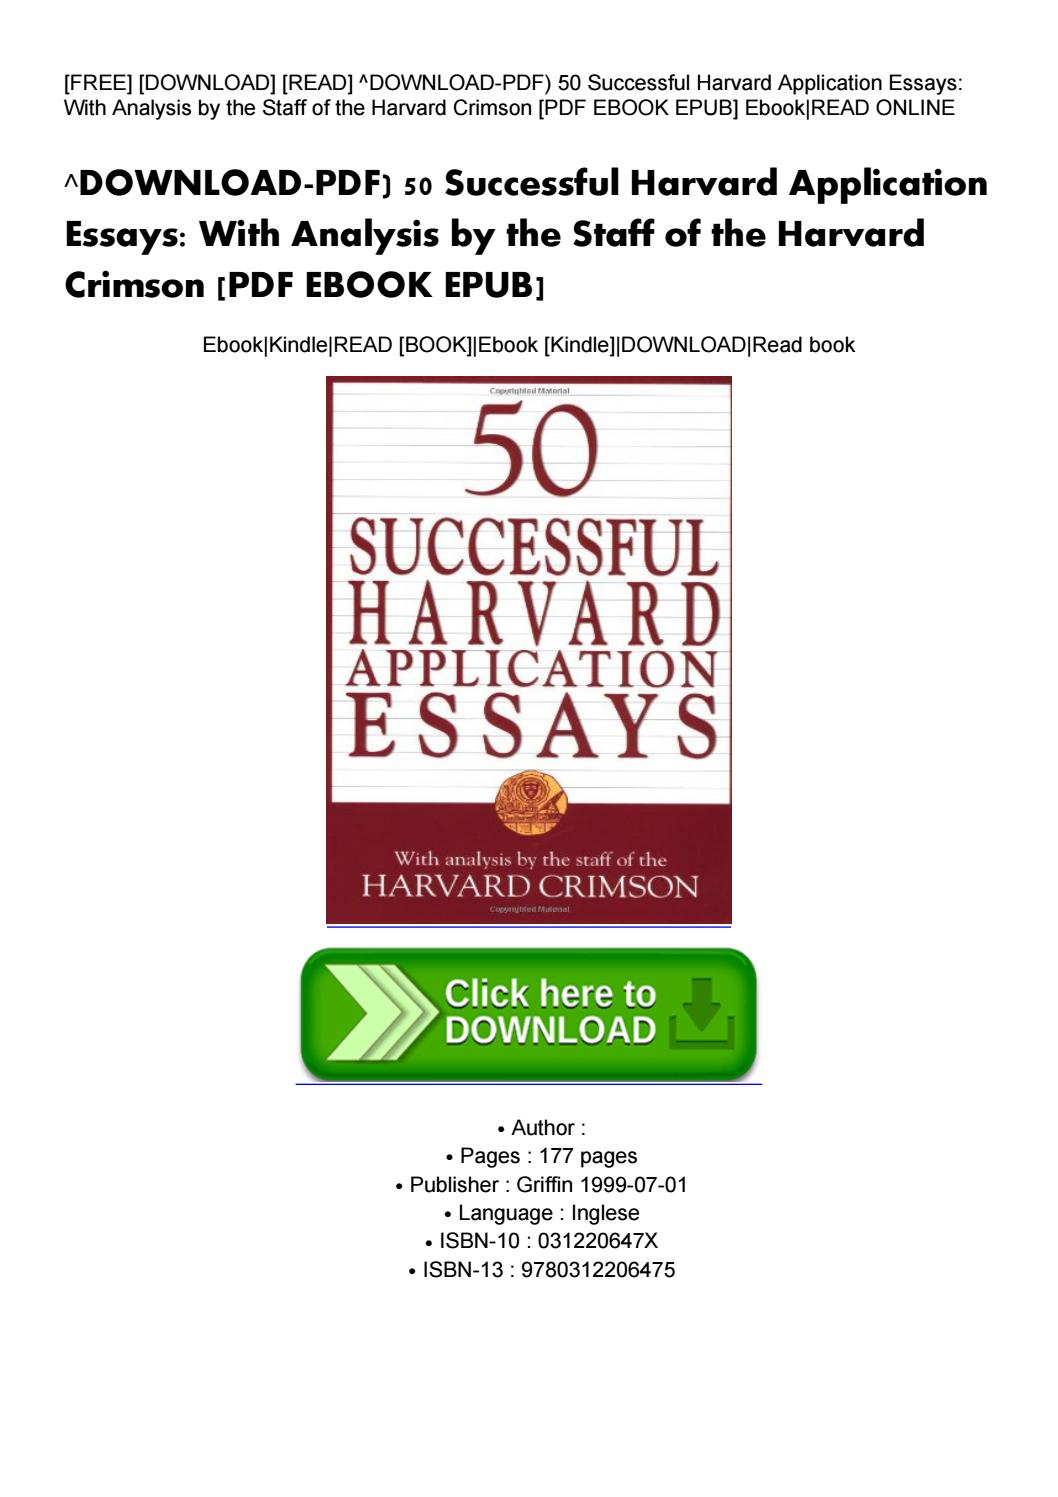 003 Essay Example Successful Harvard Application Essays Pdf Page 1 Impressive 50 Free 4th Edition Download Full